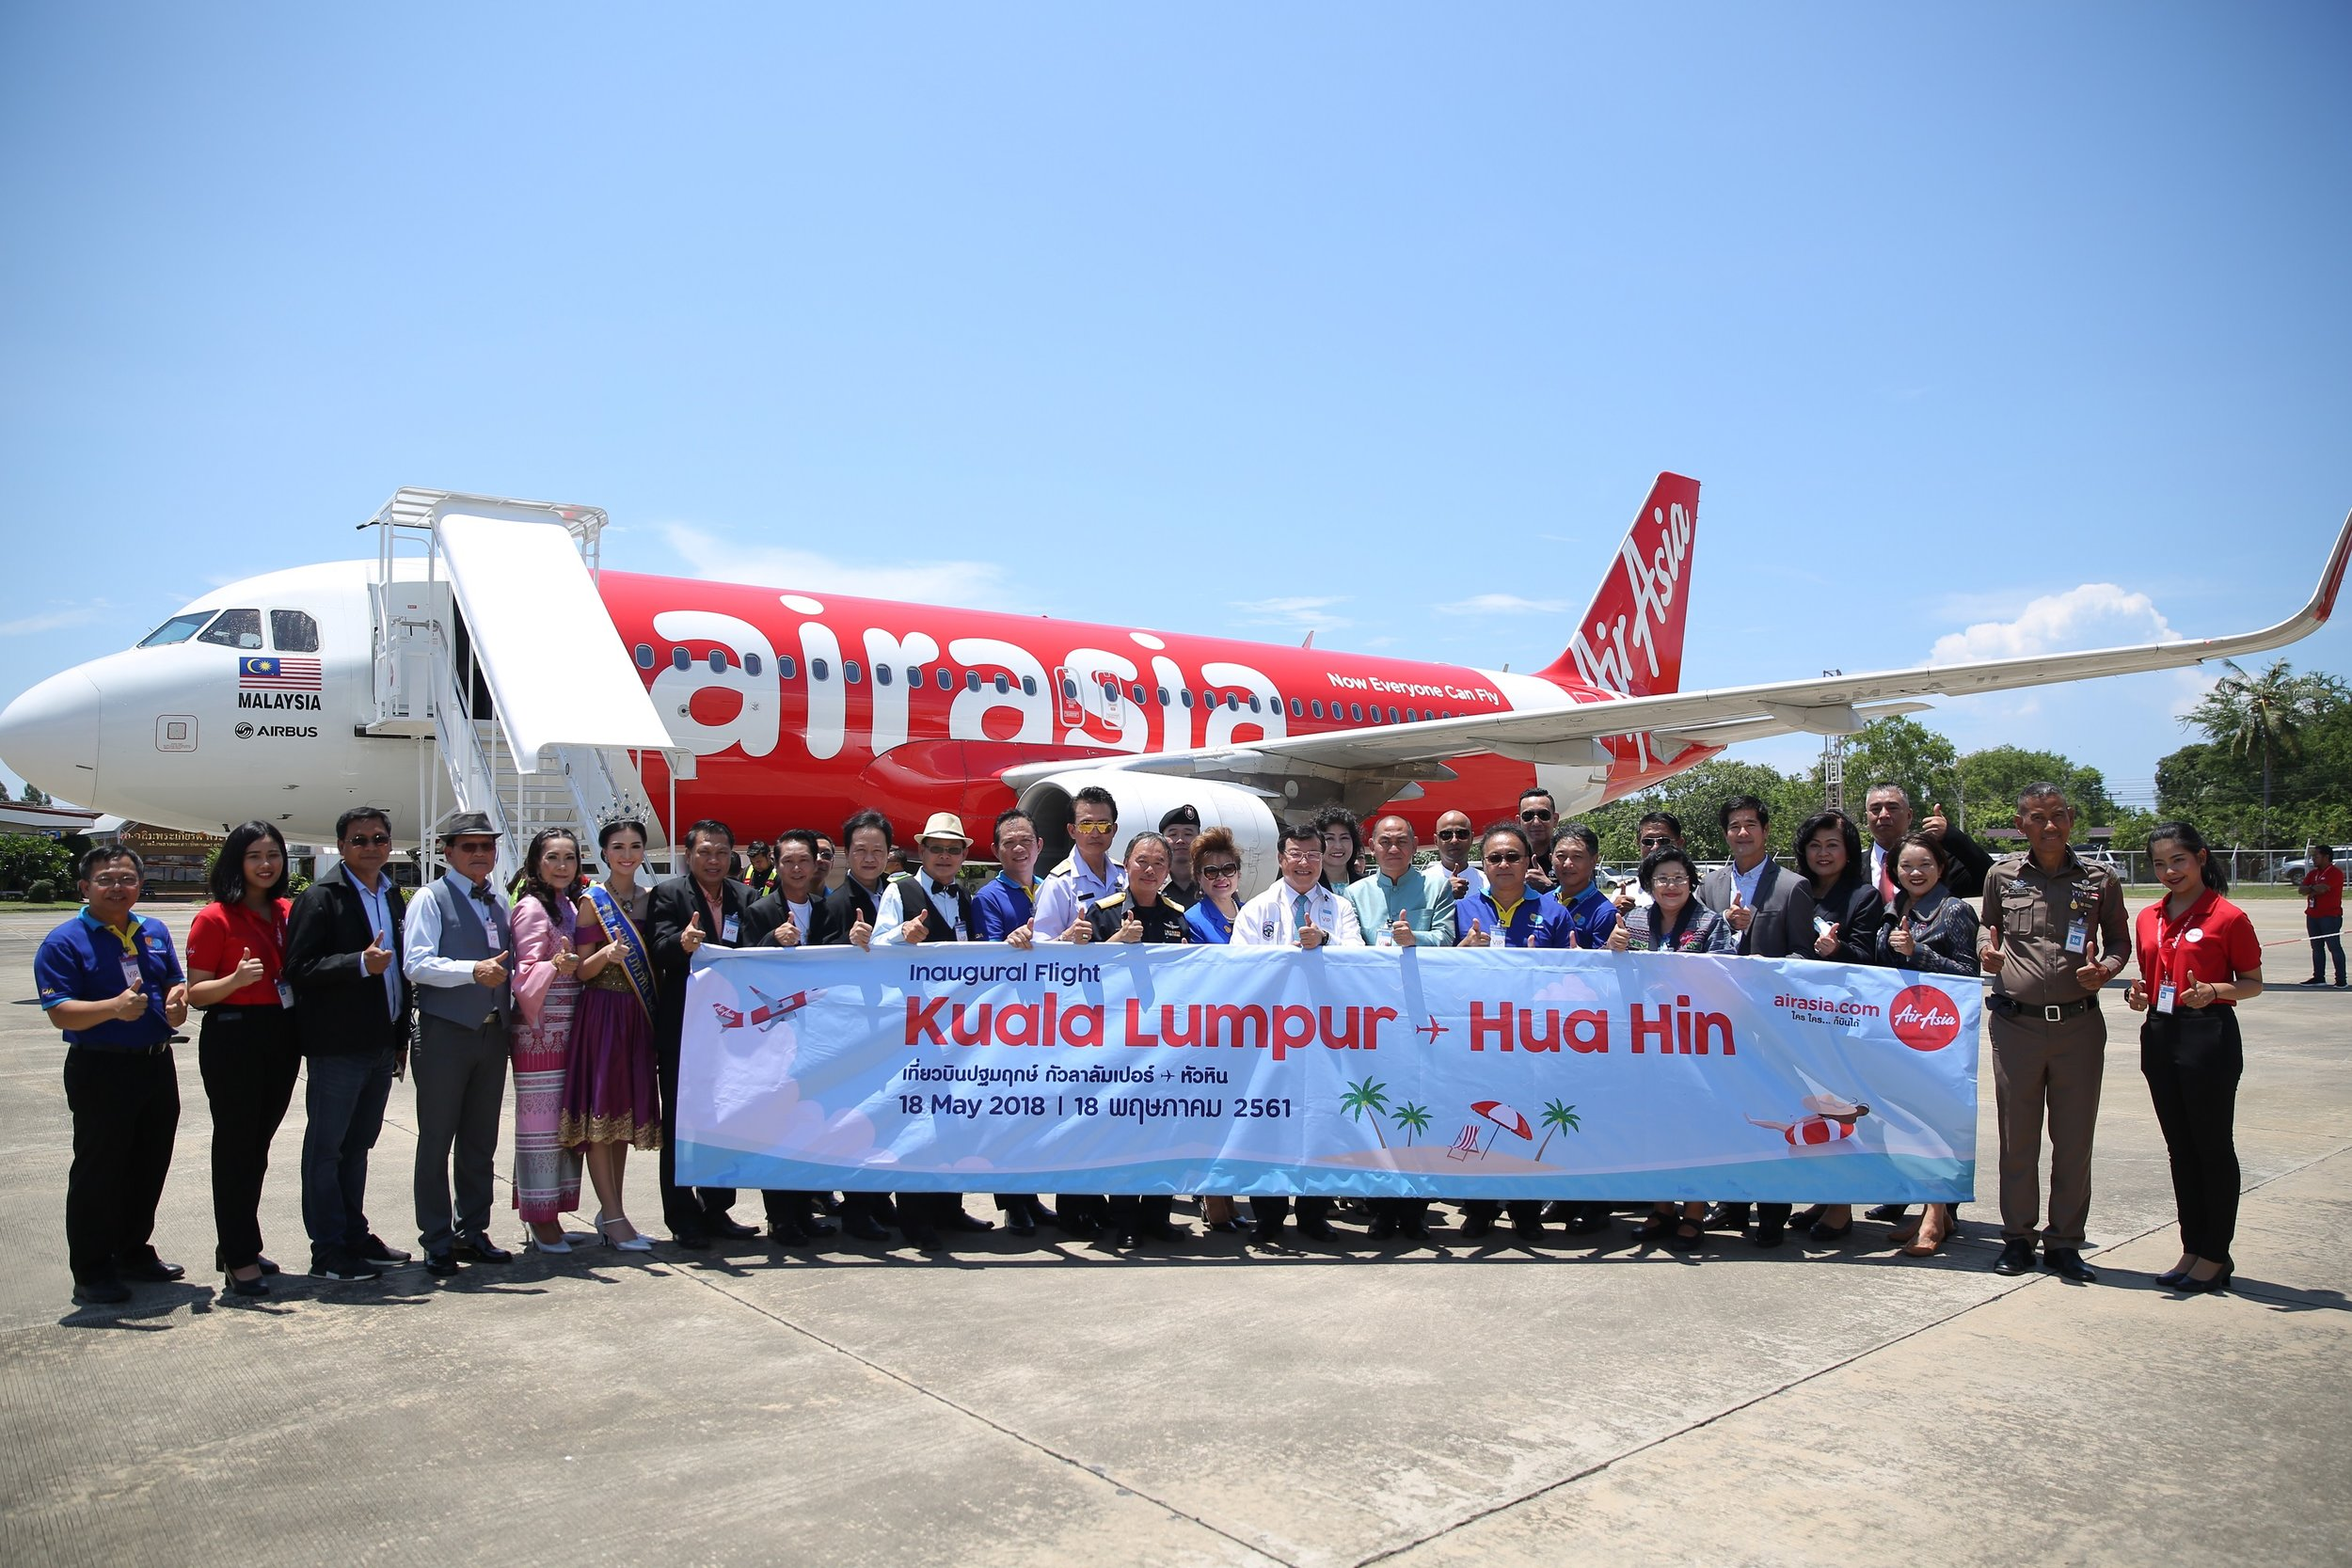 The welcoming ceremony for flight AK830 Kuala Lumpur-Hua Hin on 18 May 2018 was led by Mr. Pairin Chuchotethavorn, Deputy Minister of Transport, Mr. Daroon Saengchai, Director General of the Department of Airports, Mr. Panlop Singhaseni, Governor of Prachuap Khiri Khan province, Mr. Nopporn Wuttikul, Mayor of Hua Hin, Ms. Walailak Noypayak, TAT Director for ASEAN market, Mr. Apisit Ubolkomu, Director of Hua Hin Airport and Ms. Witchunee Kuntapeng, Director of Ground Operations for Thai AirAsia, representing AirAsia, alongside representatives of several government agencies.